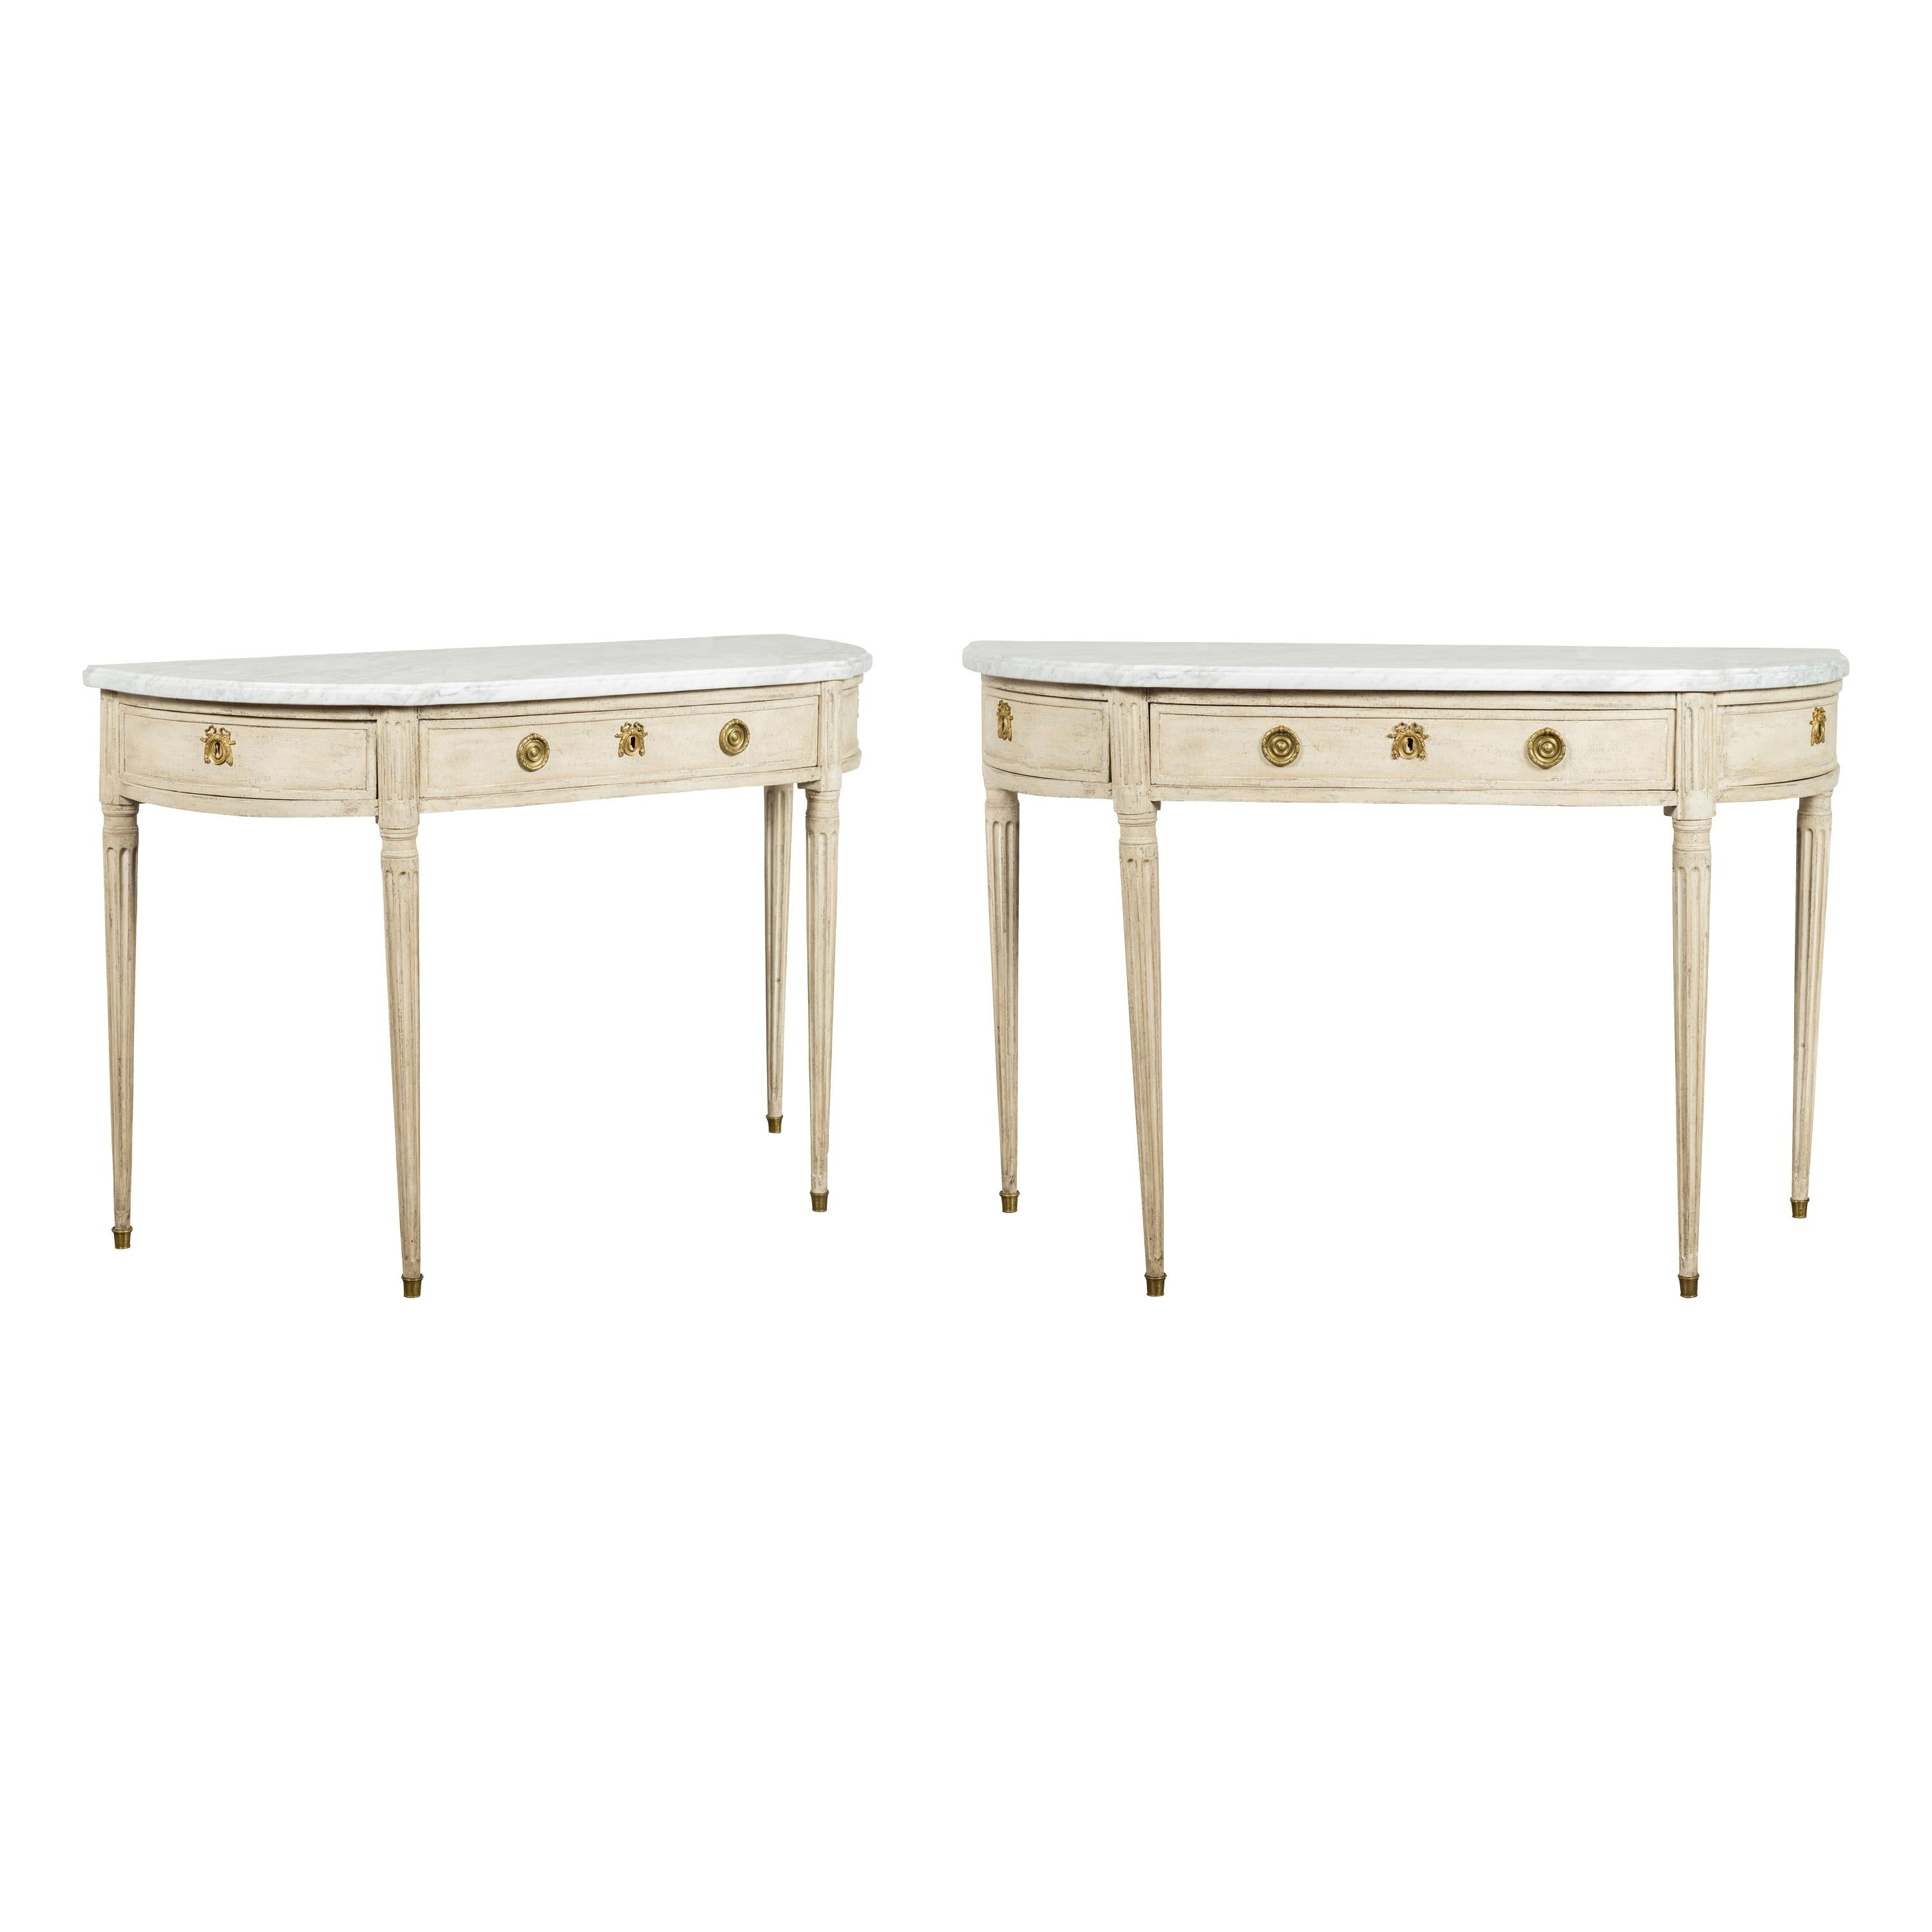 Pair of French 19th Century Neoclassical Style Demilune Tables with Marble Tops